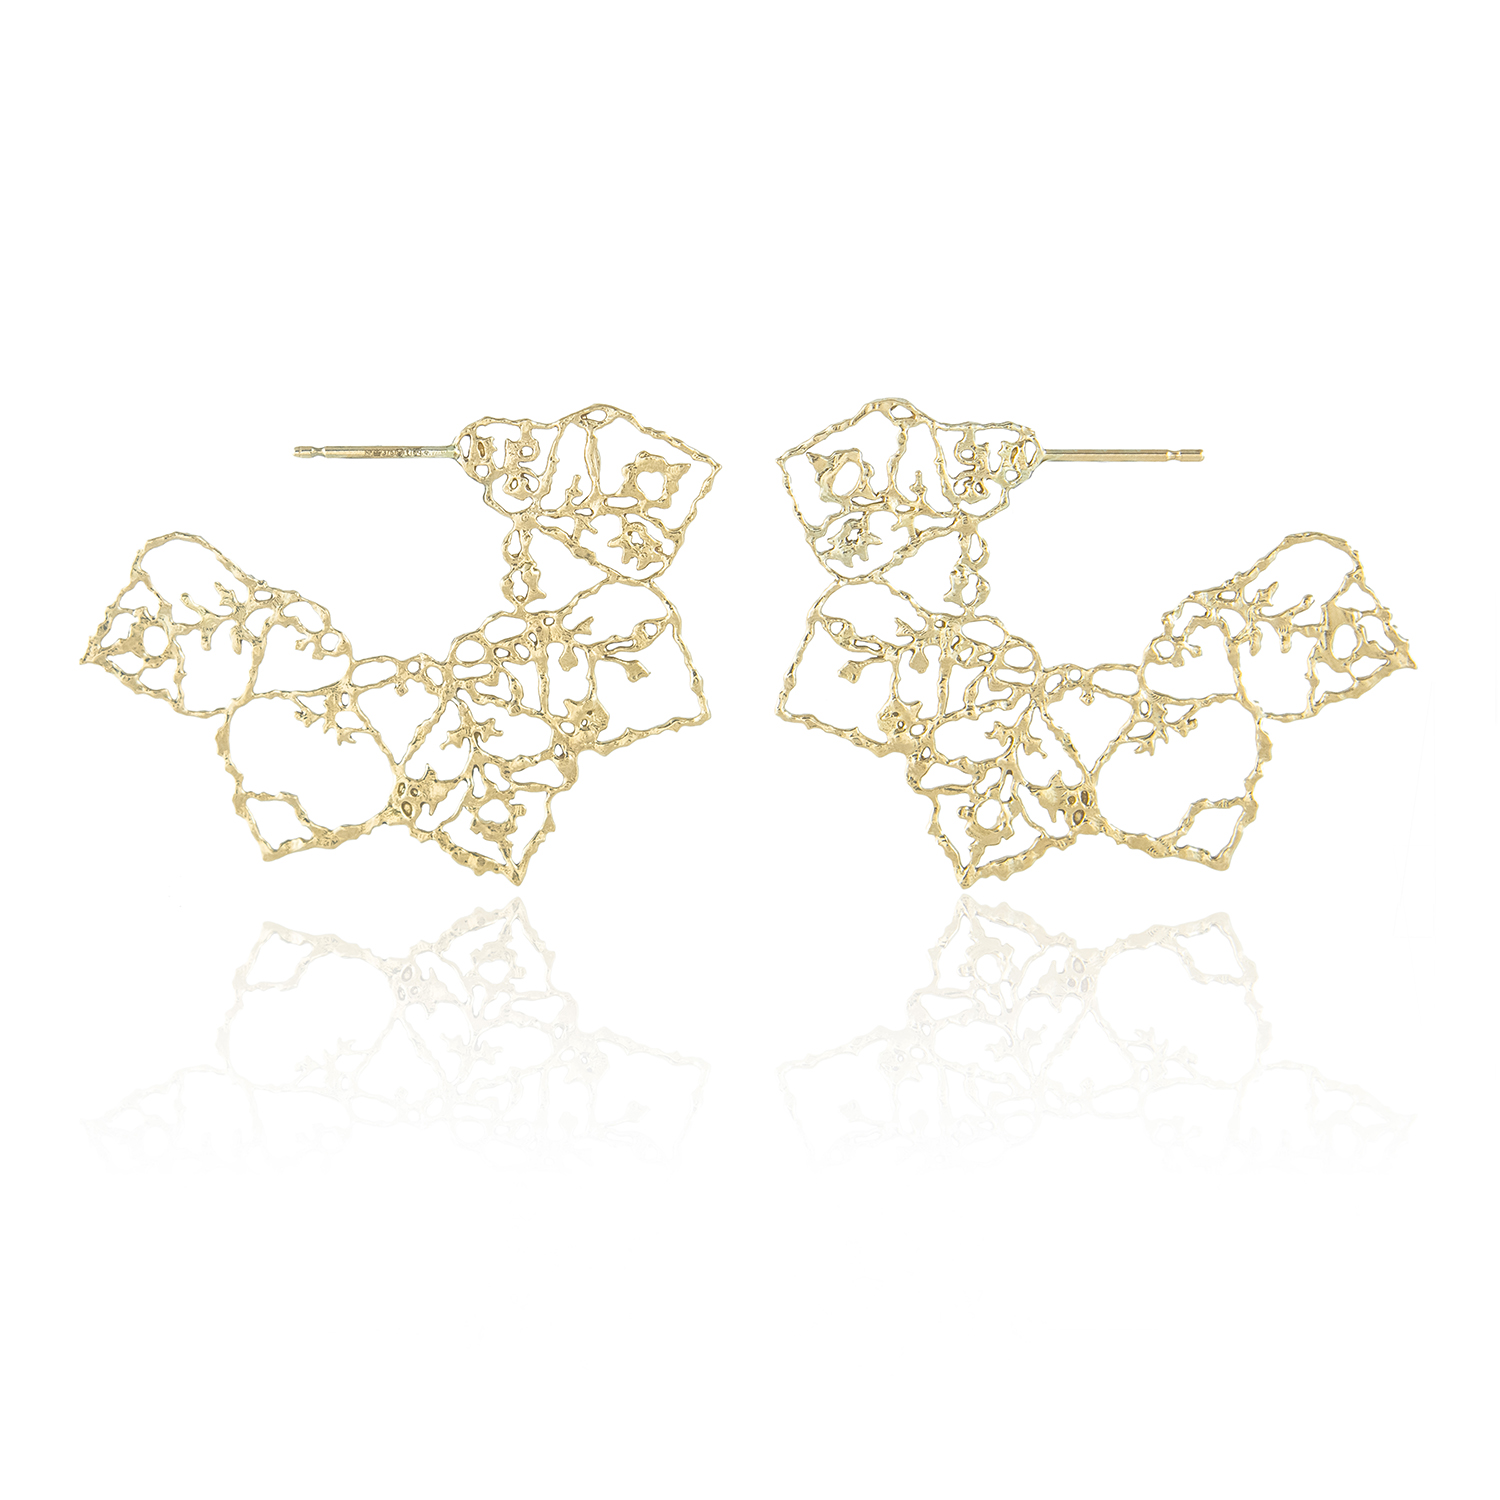 Natalie Perry, Mandala Hoops in 9ct Fairtrade Gold